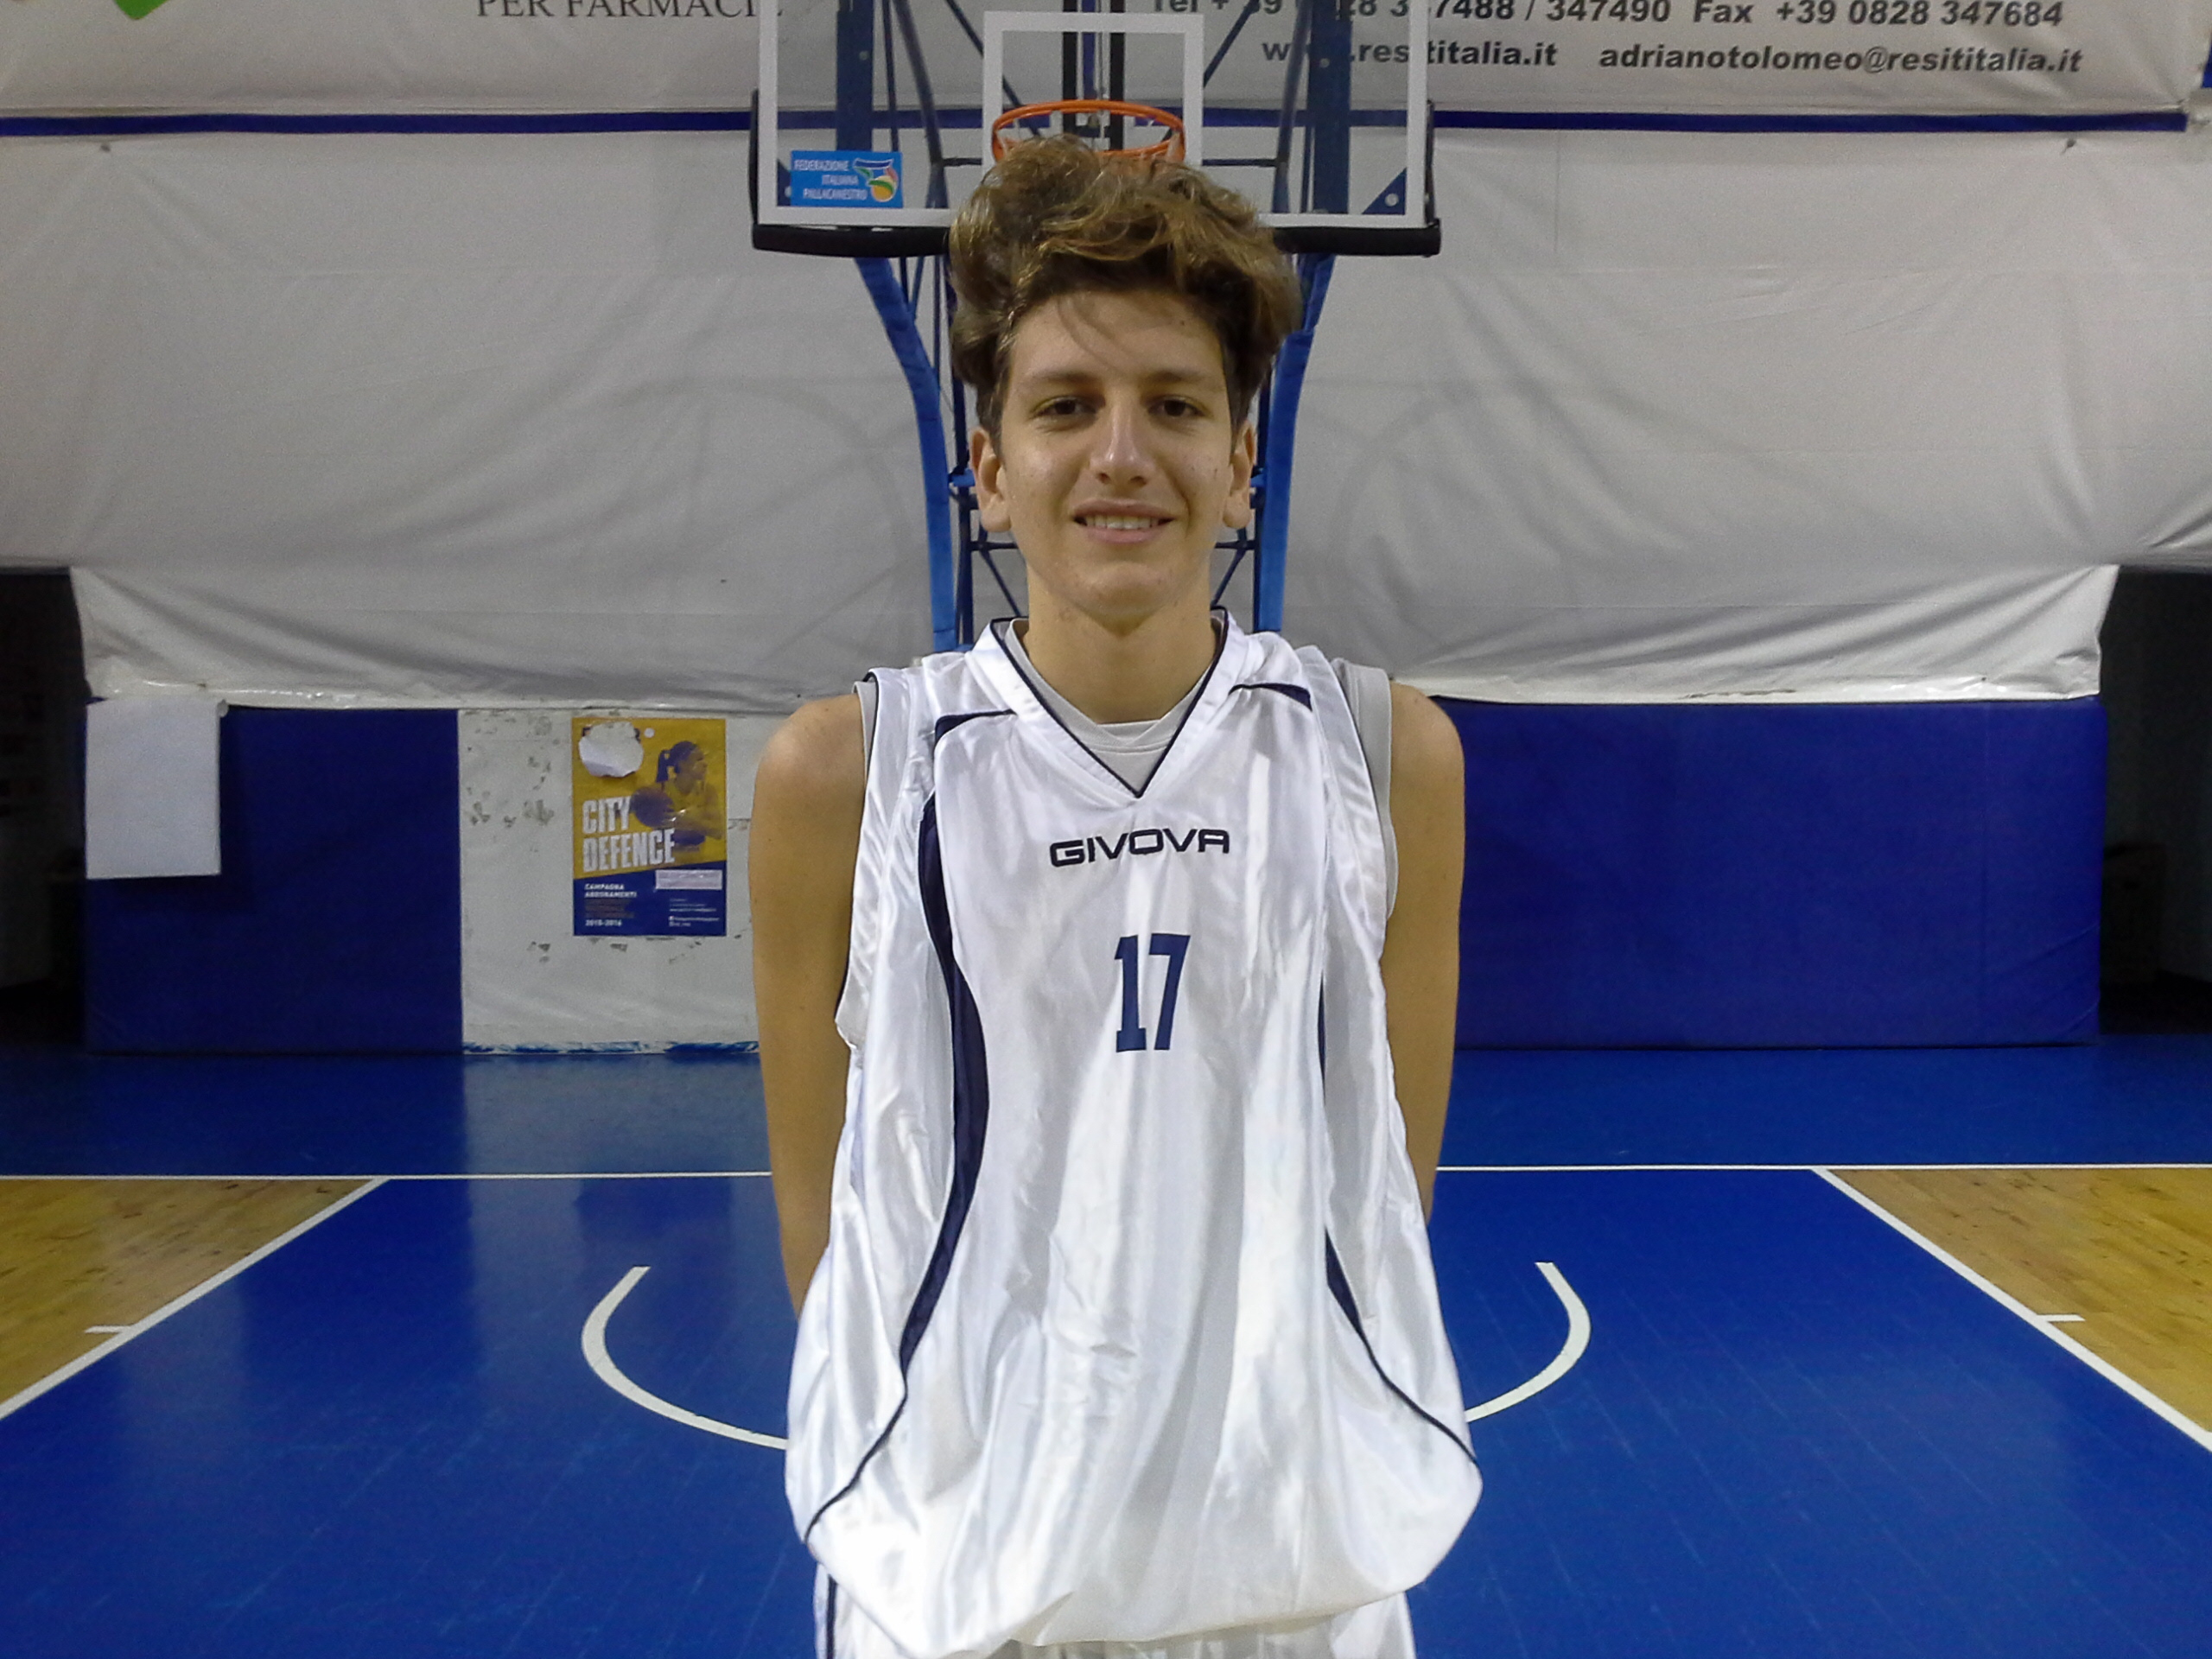 Enrico Fereoli dell'under 18 Regionale